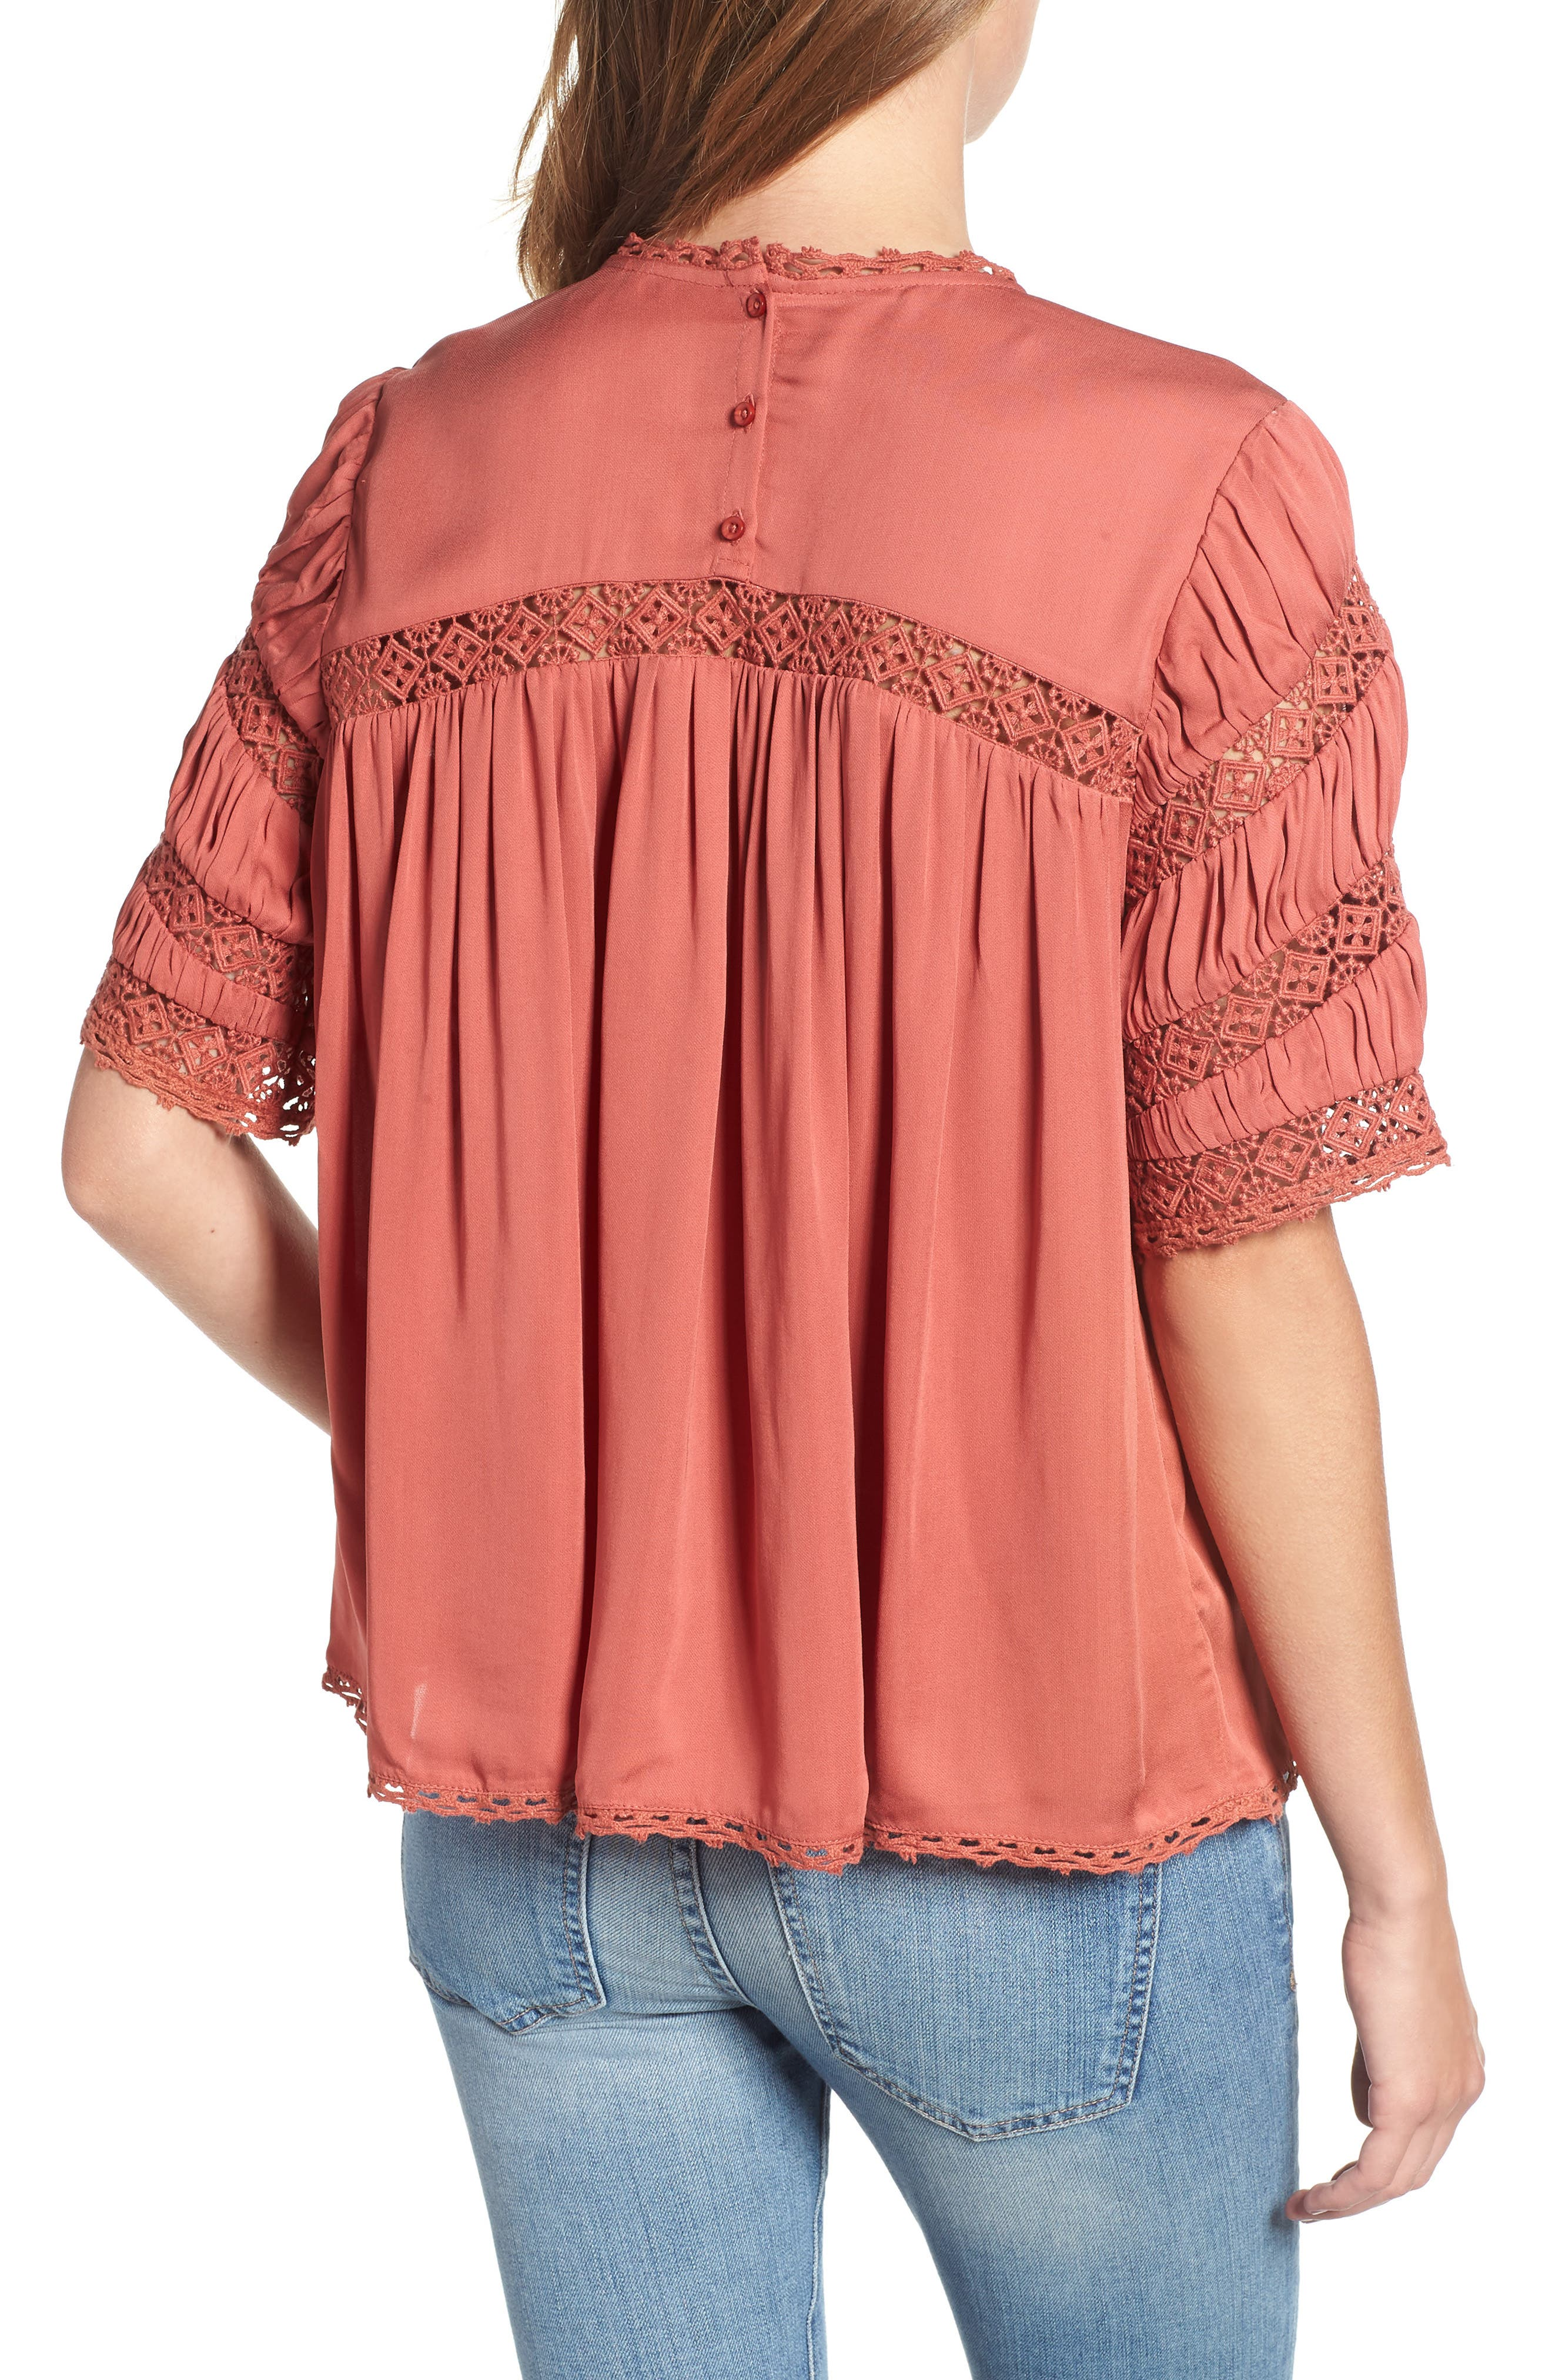 HINGE,                             Gathered Lace Top,                             Alternate thumbnail 2, color,                             660